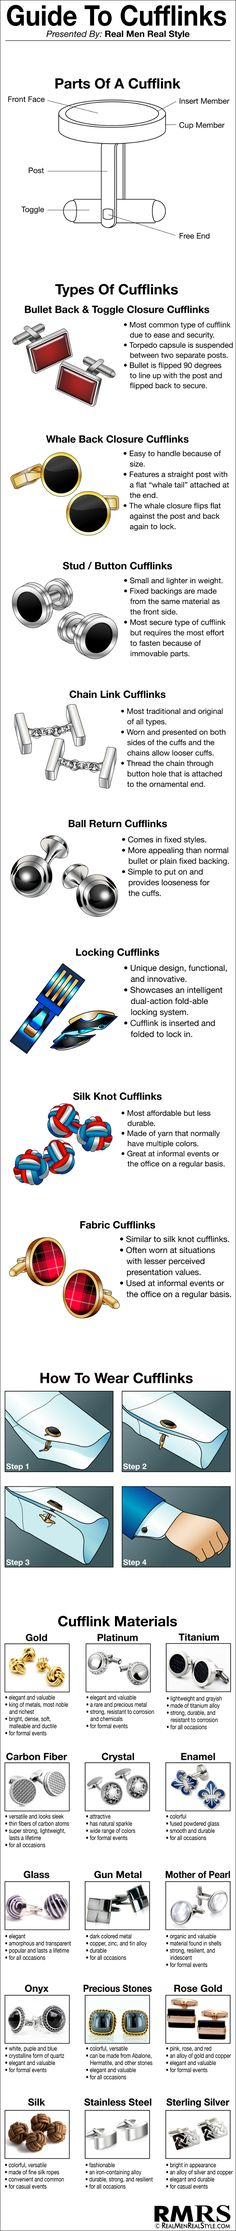 Ultimate Guide to Cufflinks Infographic | Man's Guide to Cuff-links | Cufflink Visual Chart